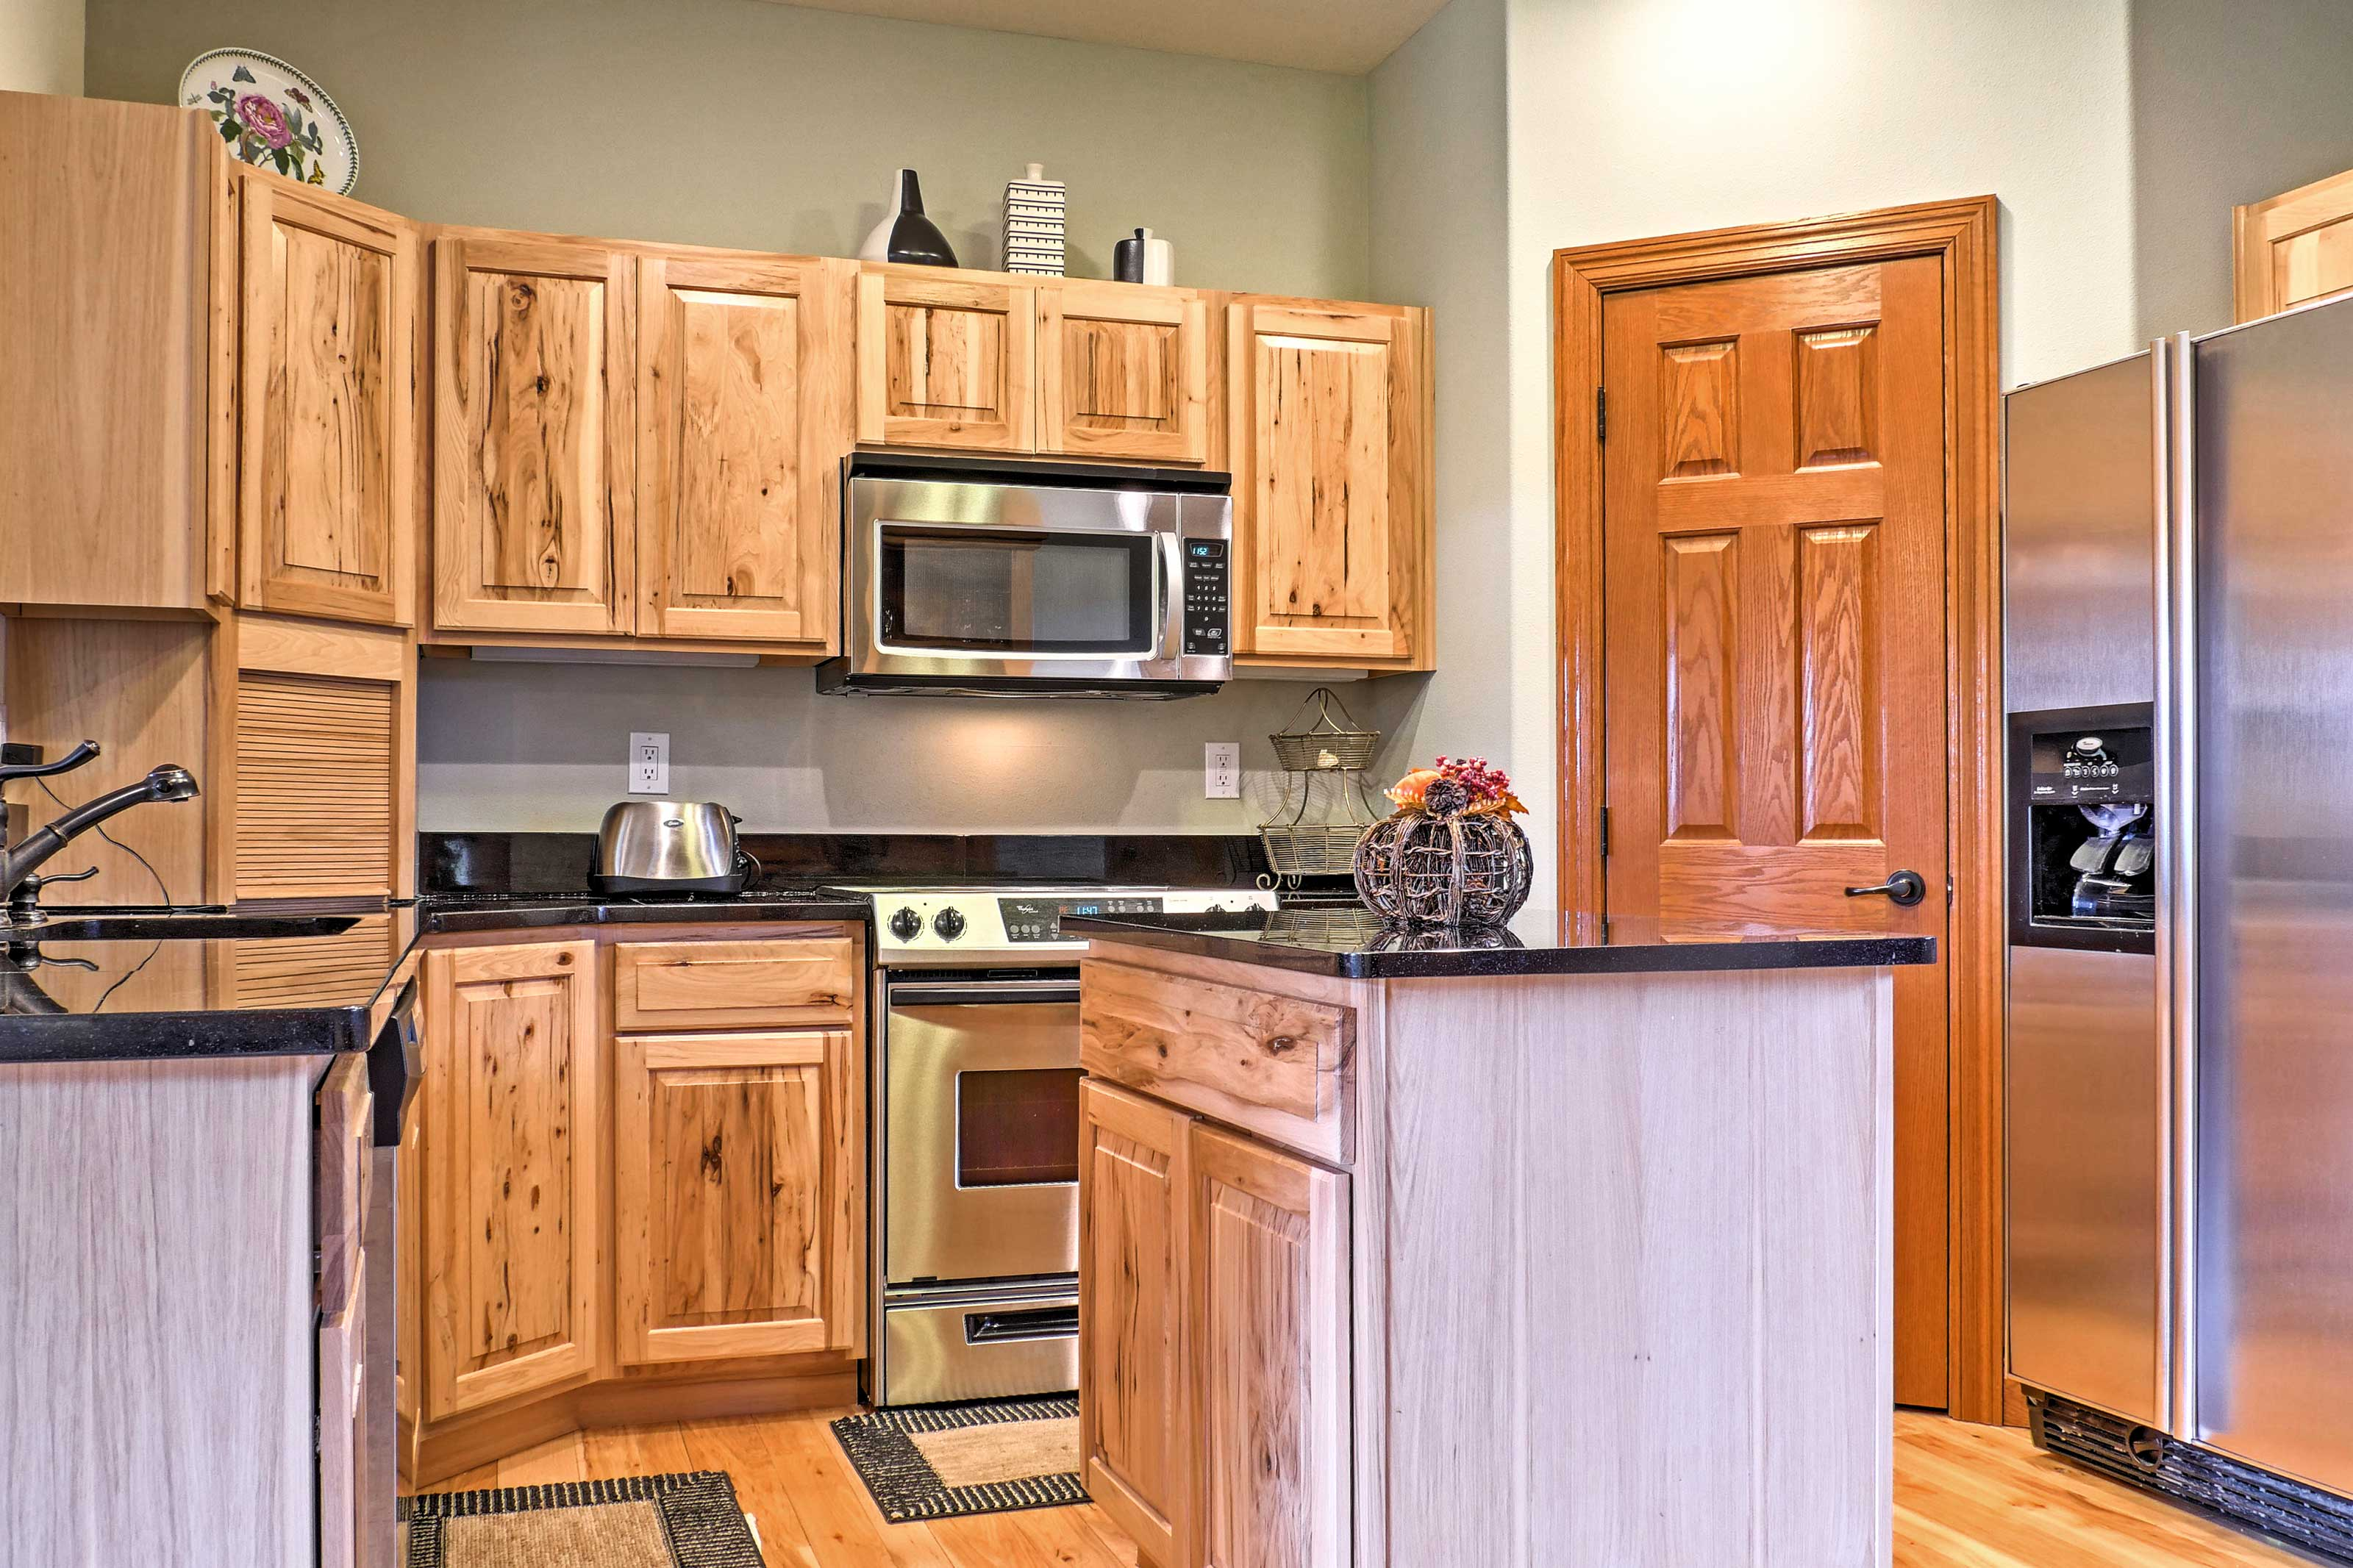 Bring all your favorite recipes to life in the fully equipped kitchen, complete with stainless steel appliances.